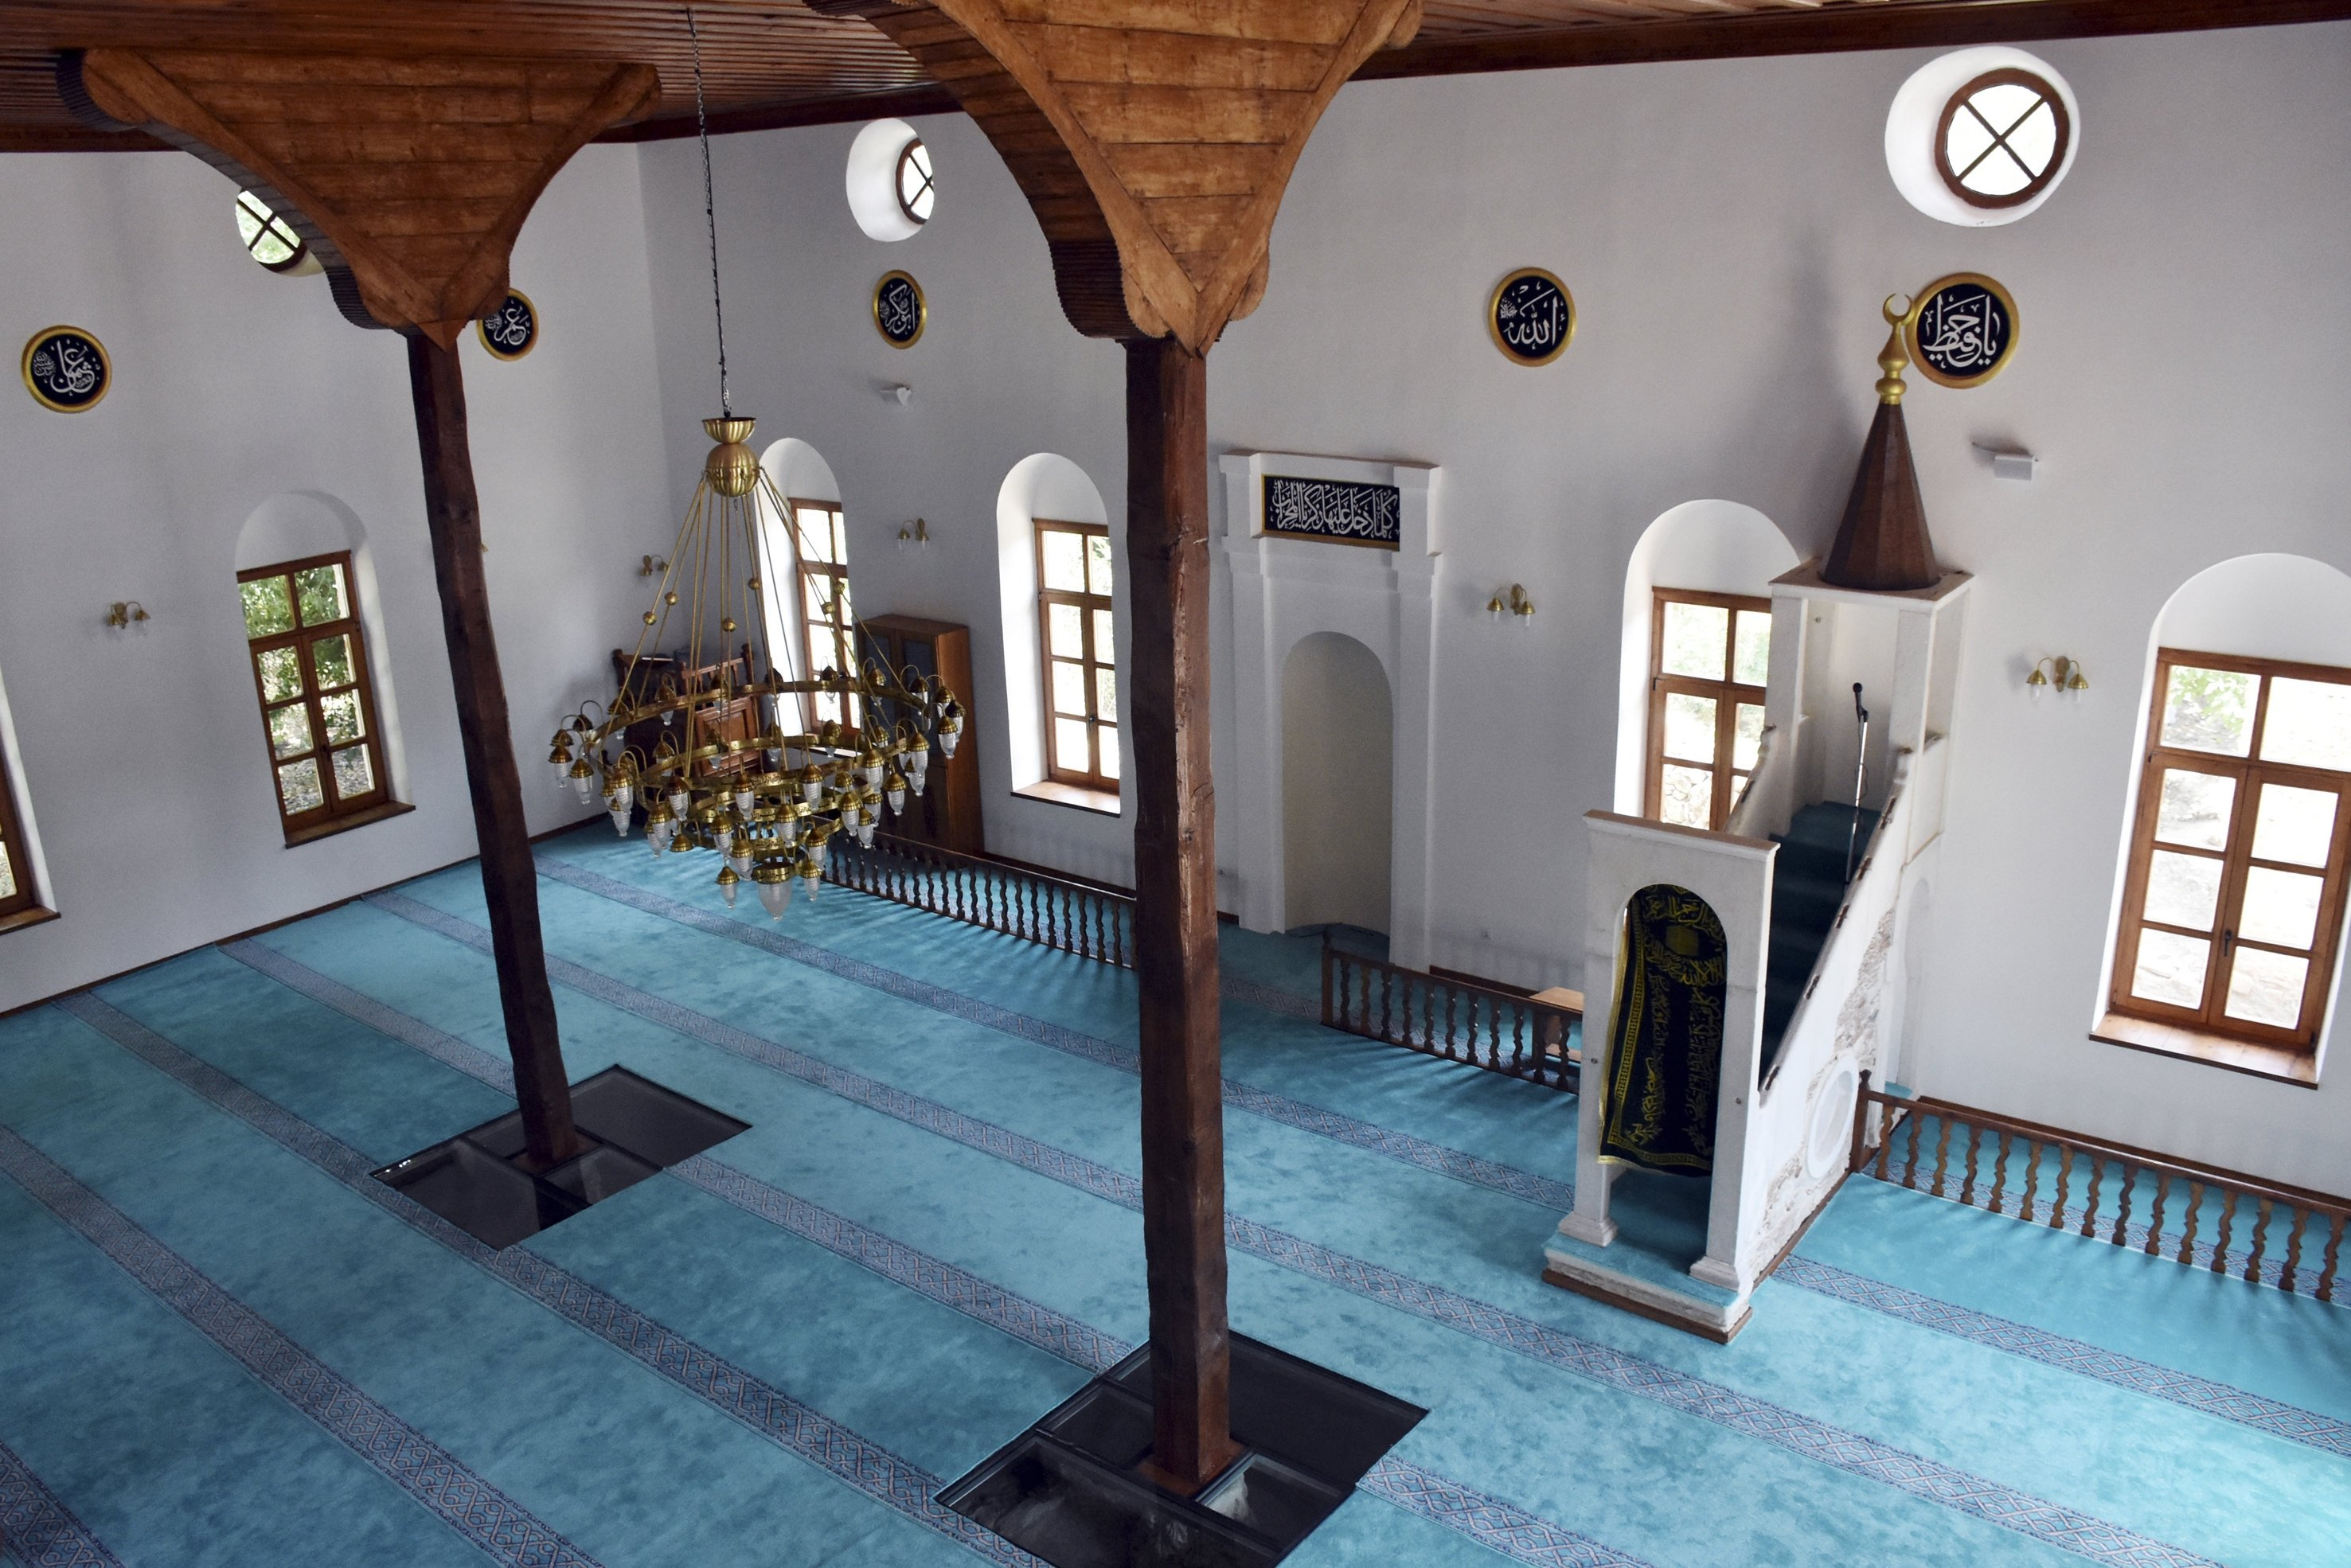 A photo showing the interior of the restored Şaban Ağa Mosque from the Ottoman period in the ancient city of Stratonikeia, Muğla, southwestern Turkey, June, 14, 2018. (AA PHOTO)